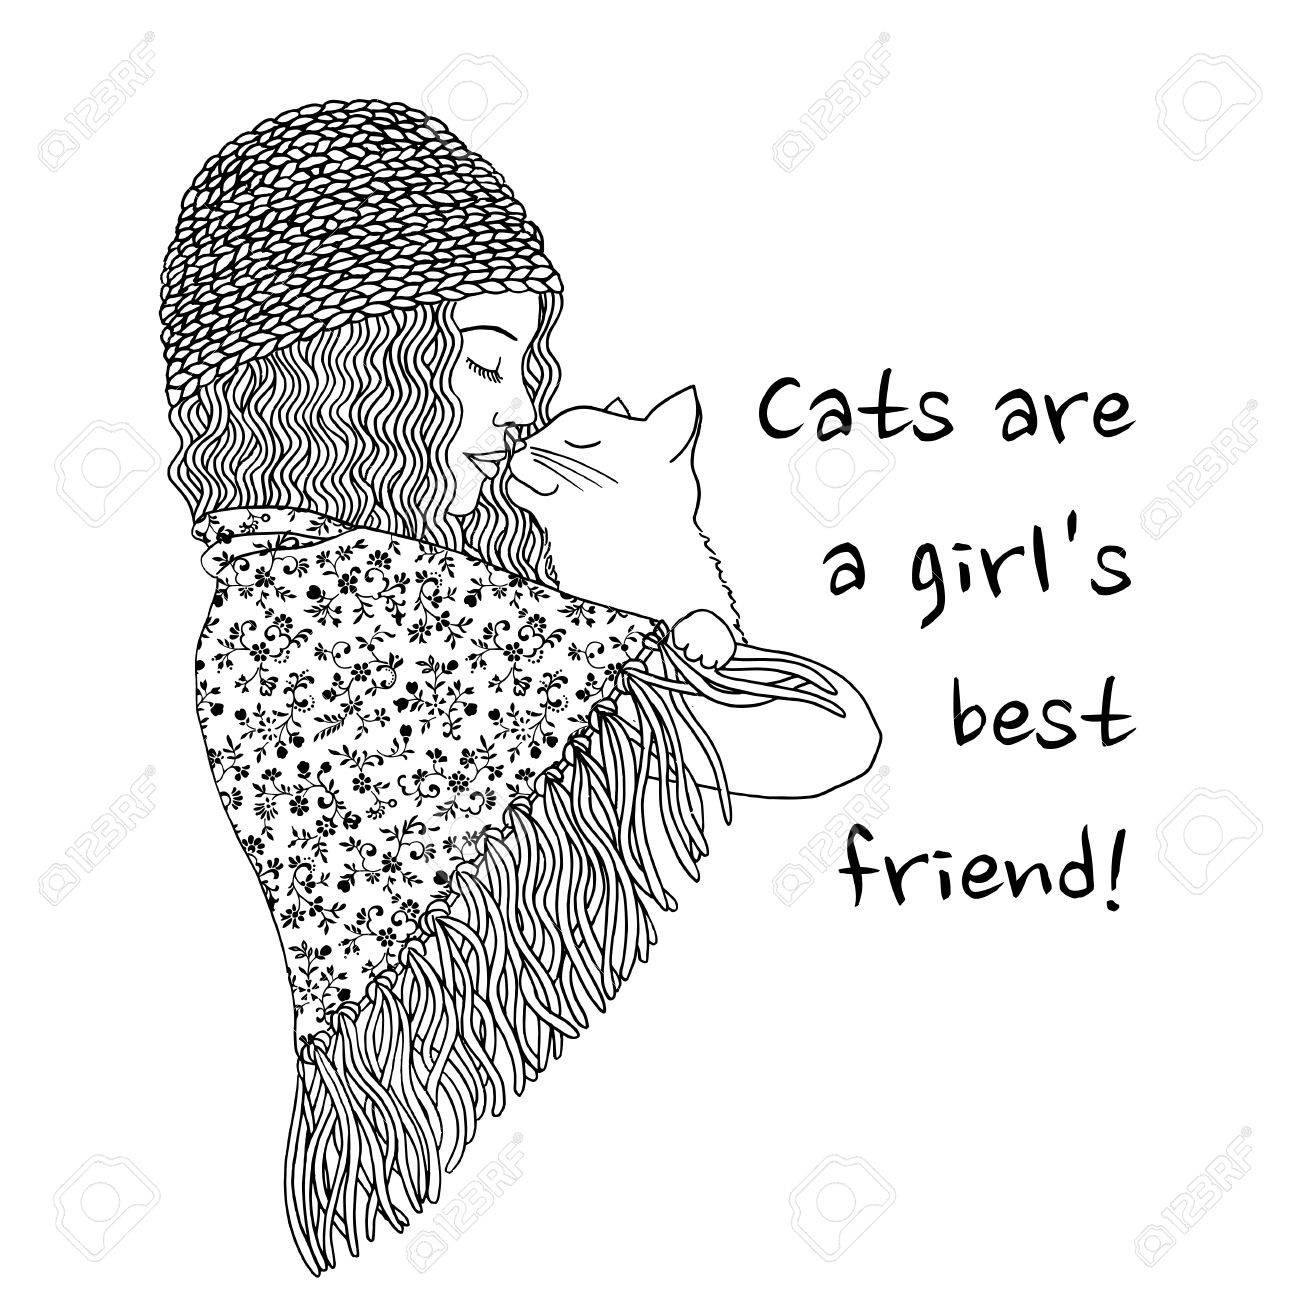 Cats are a girls best friend hand drawn black and white illustration